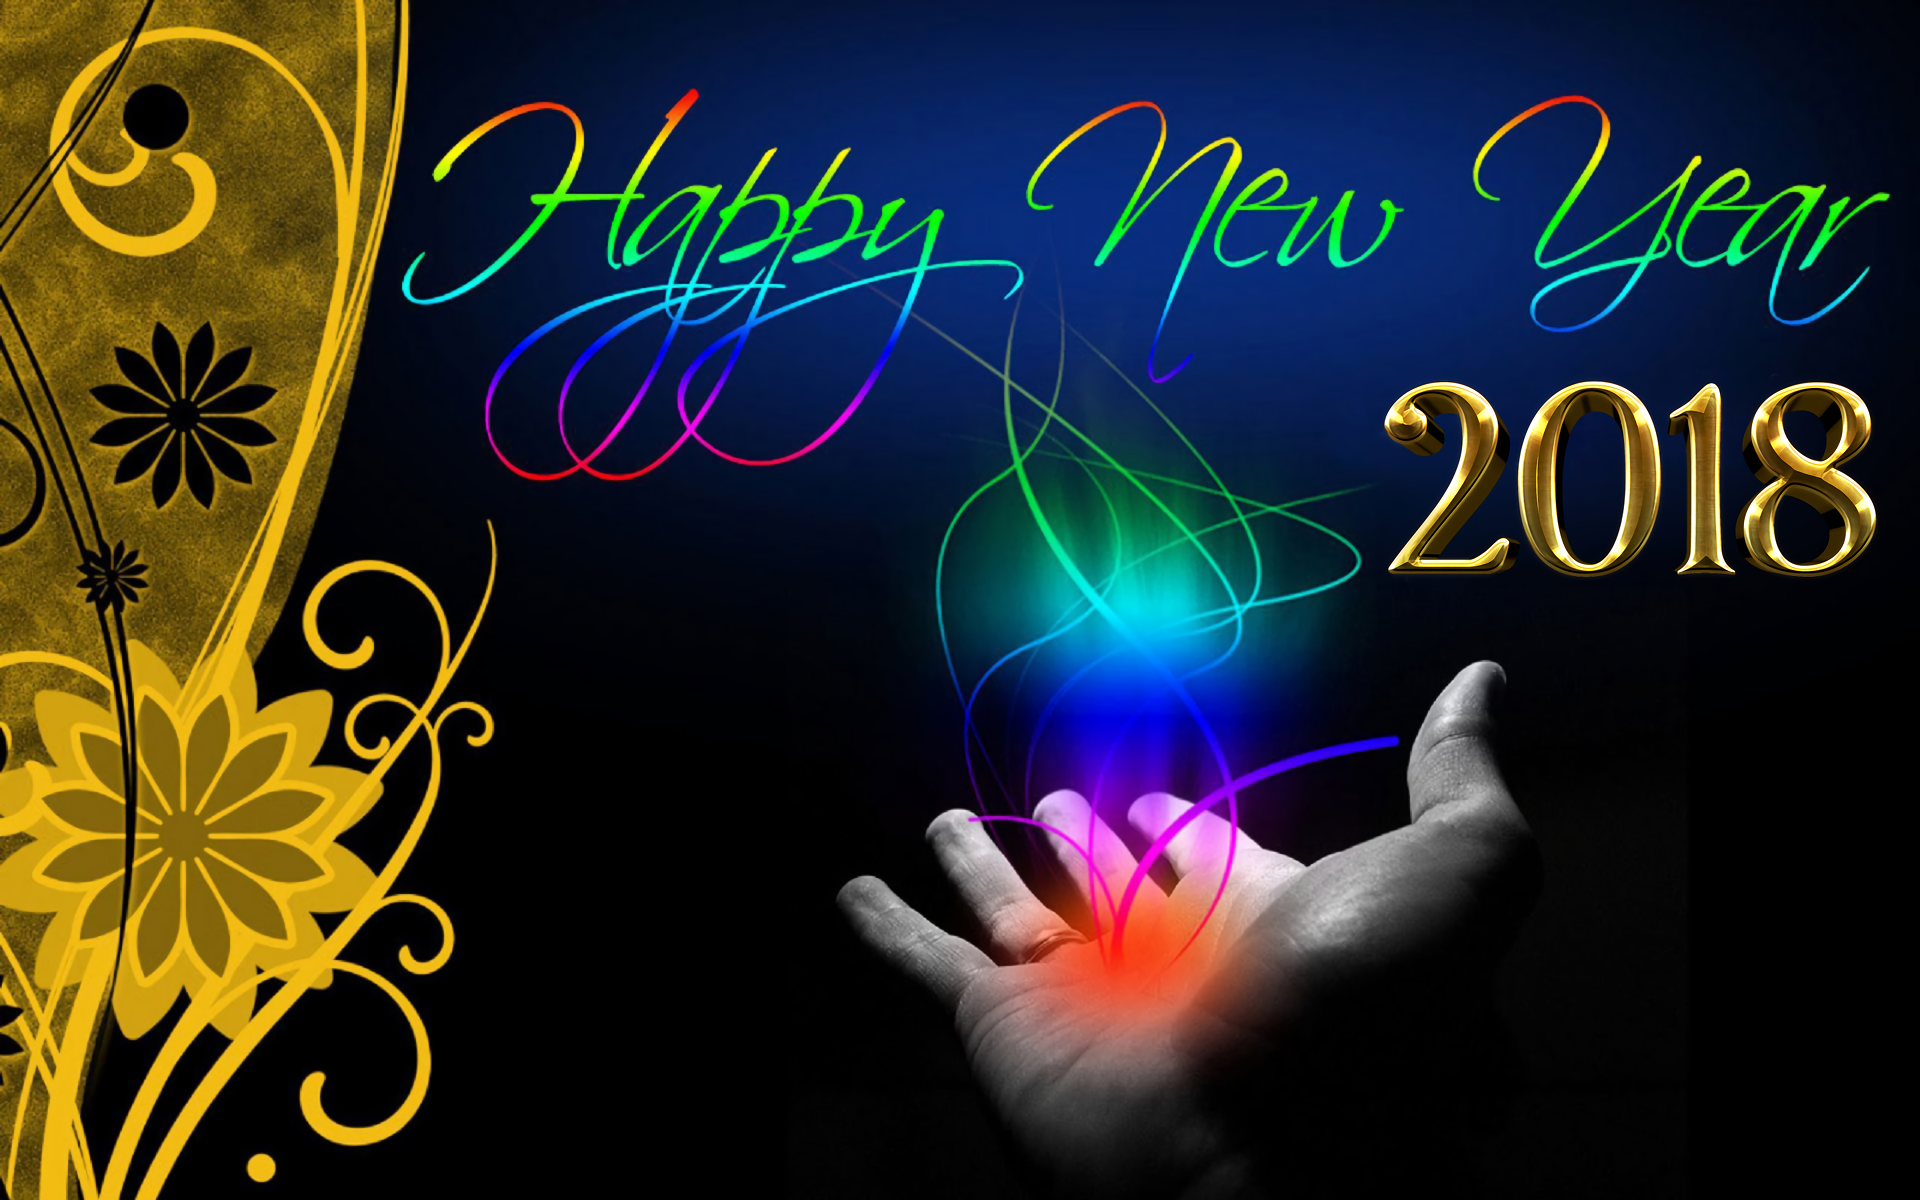 happy new year new year new year 2018 hd wallpaper background image id882484